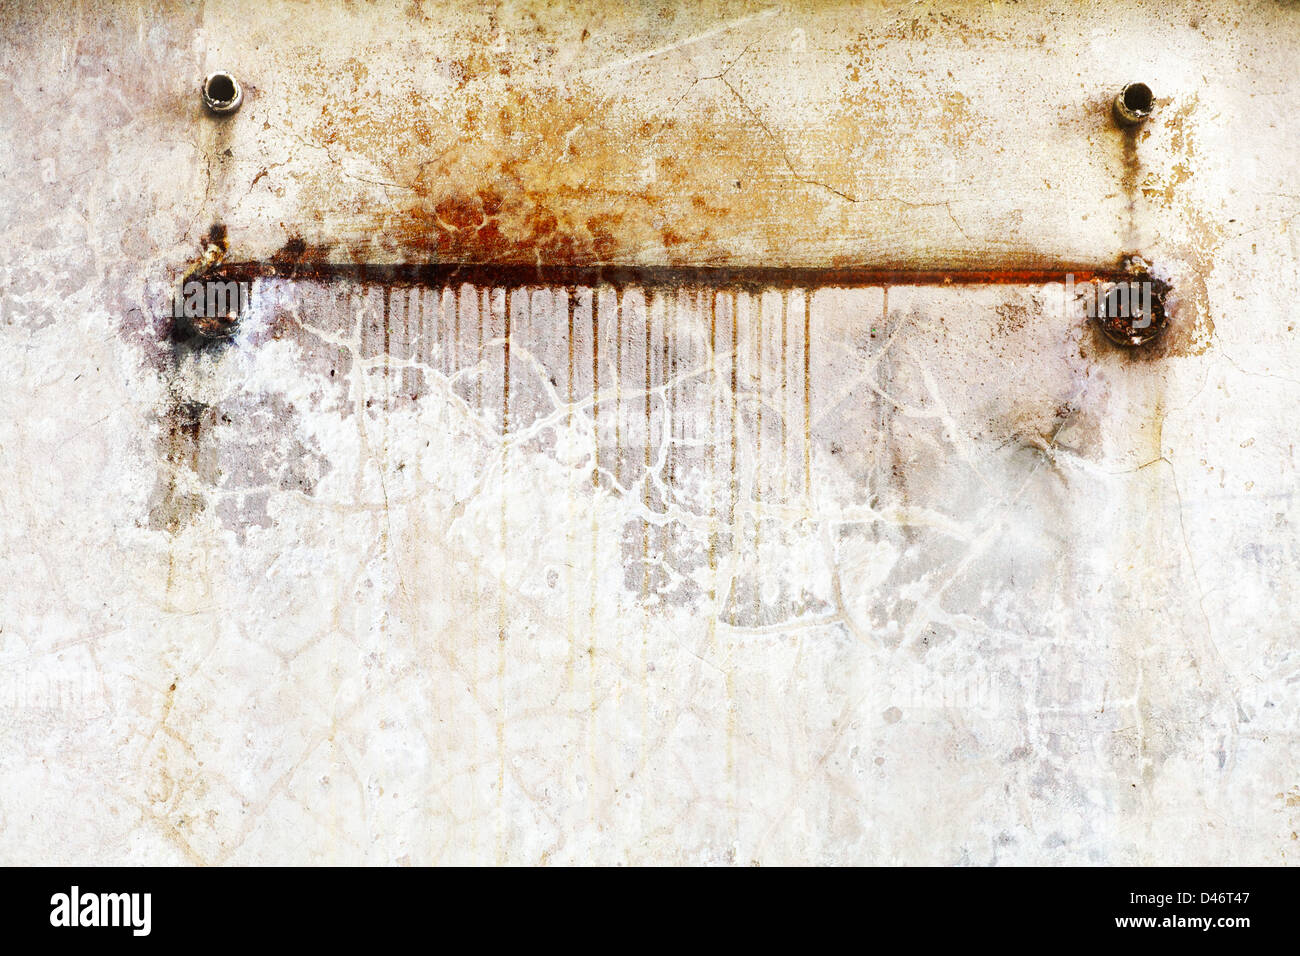 Stains on a wall from an old fixture - Stock Image